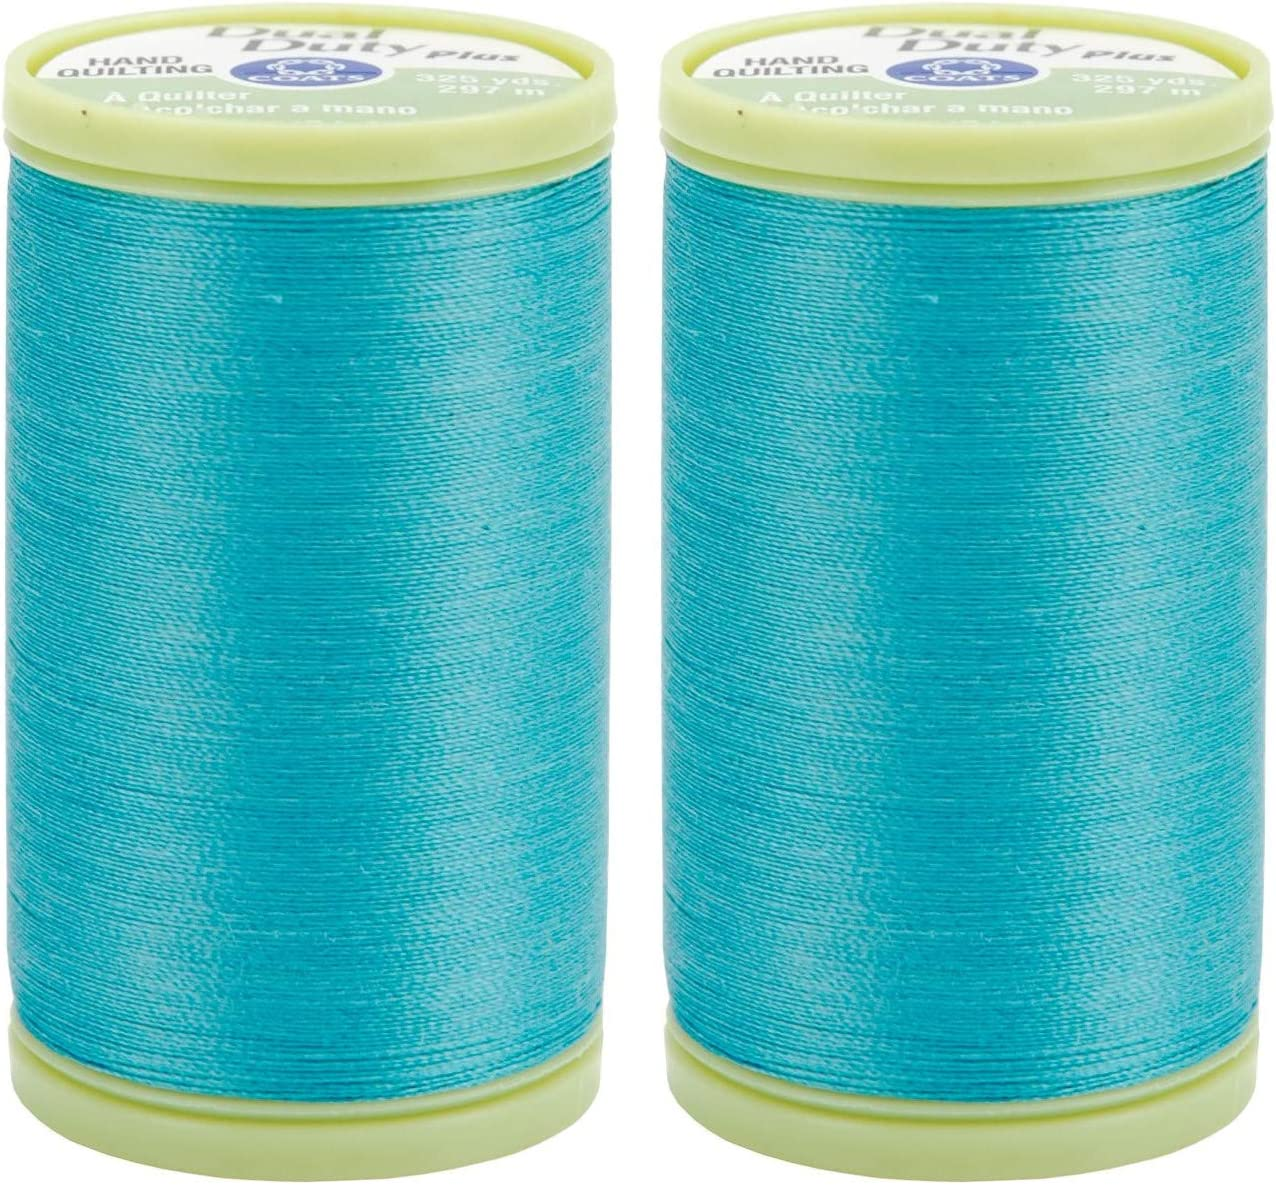 2-Pack famous Coats Clark Dual Clearance SALE Limited time Duty 325yd Plus Hand Thread Quilting